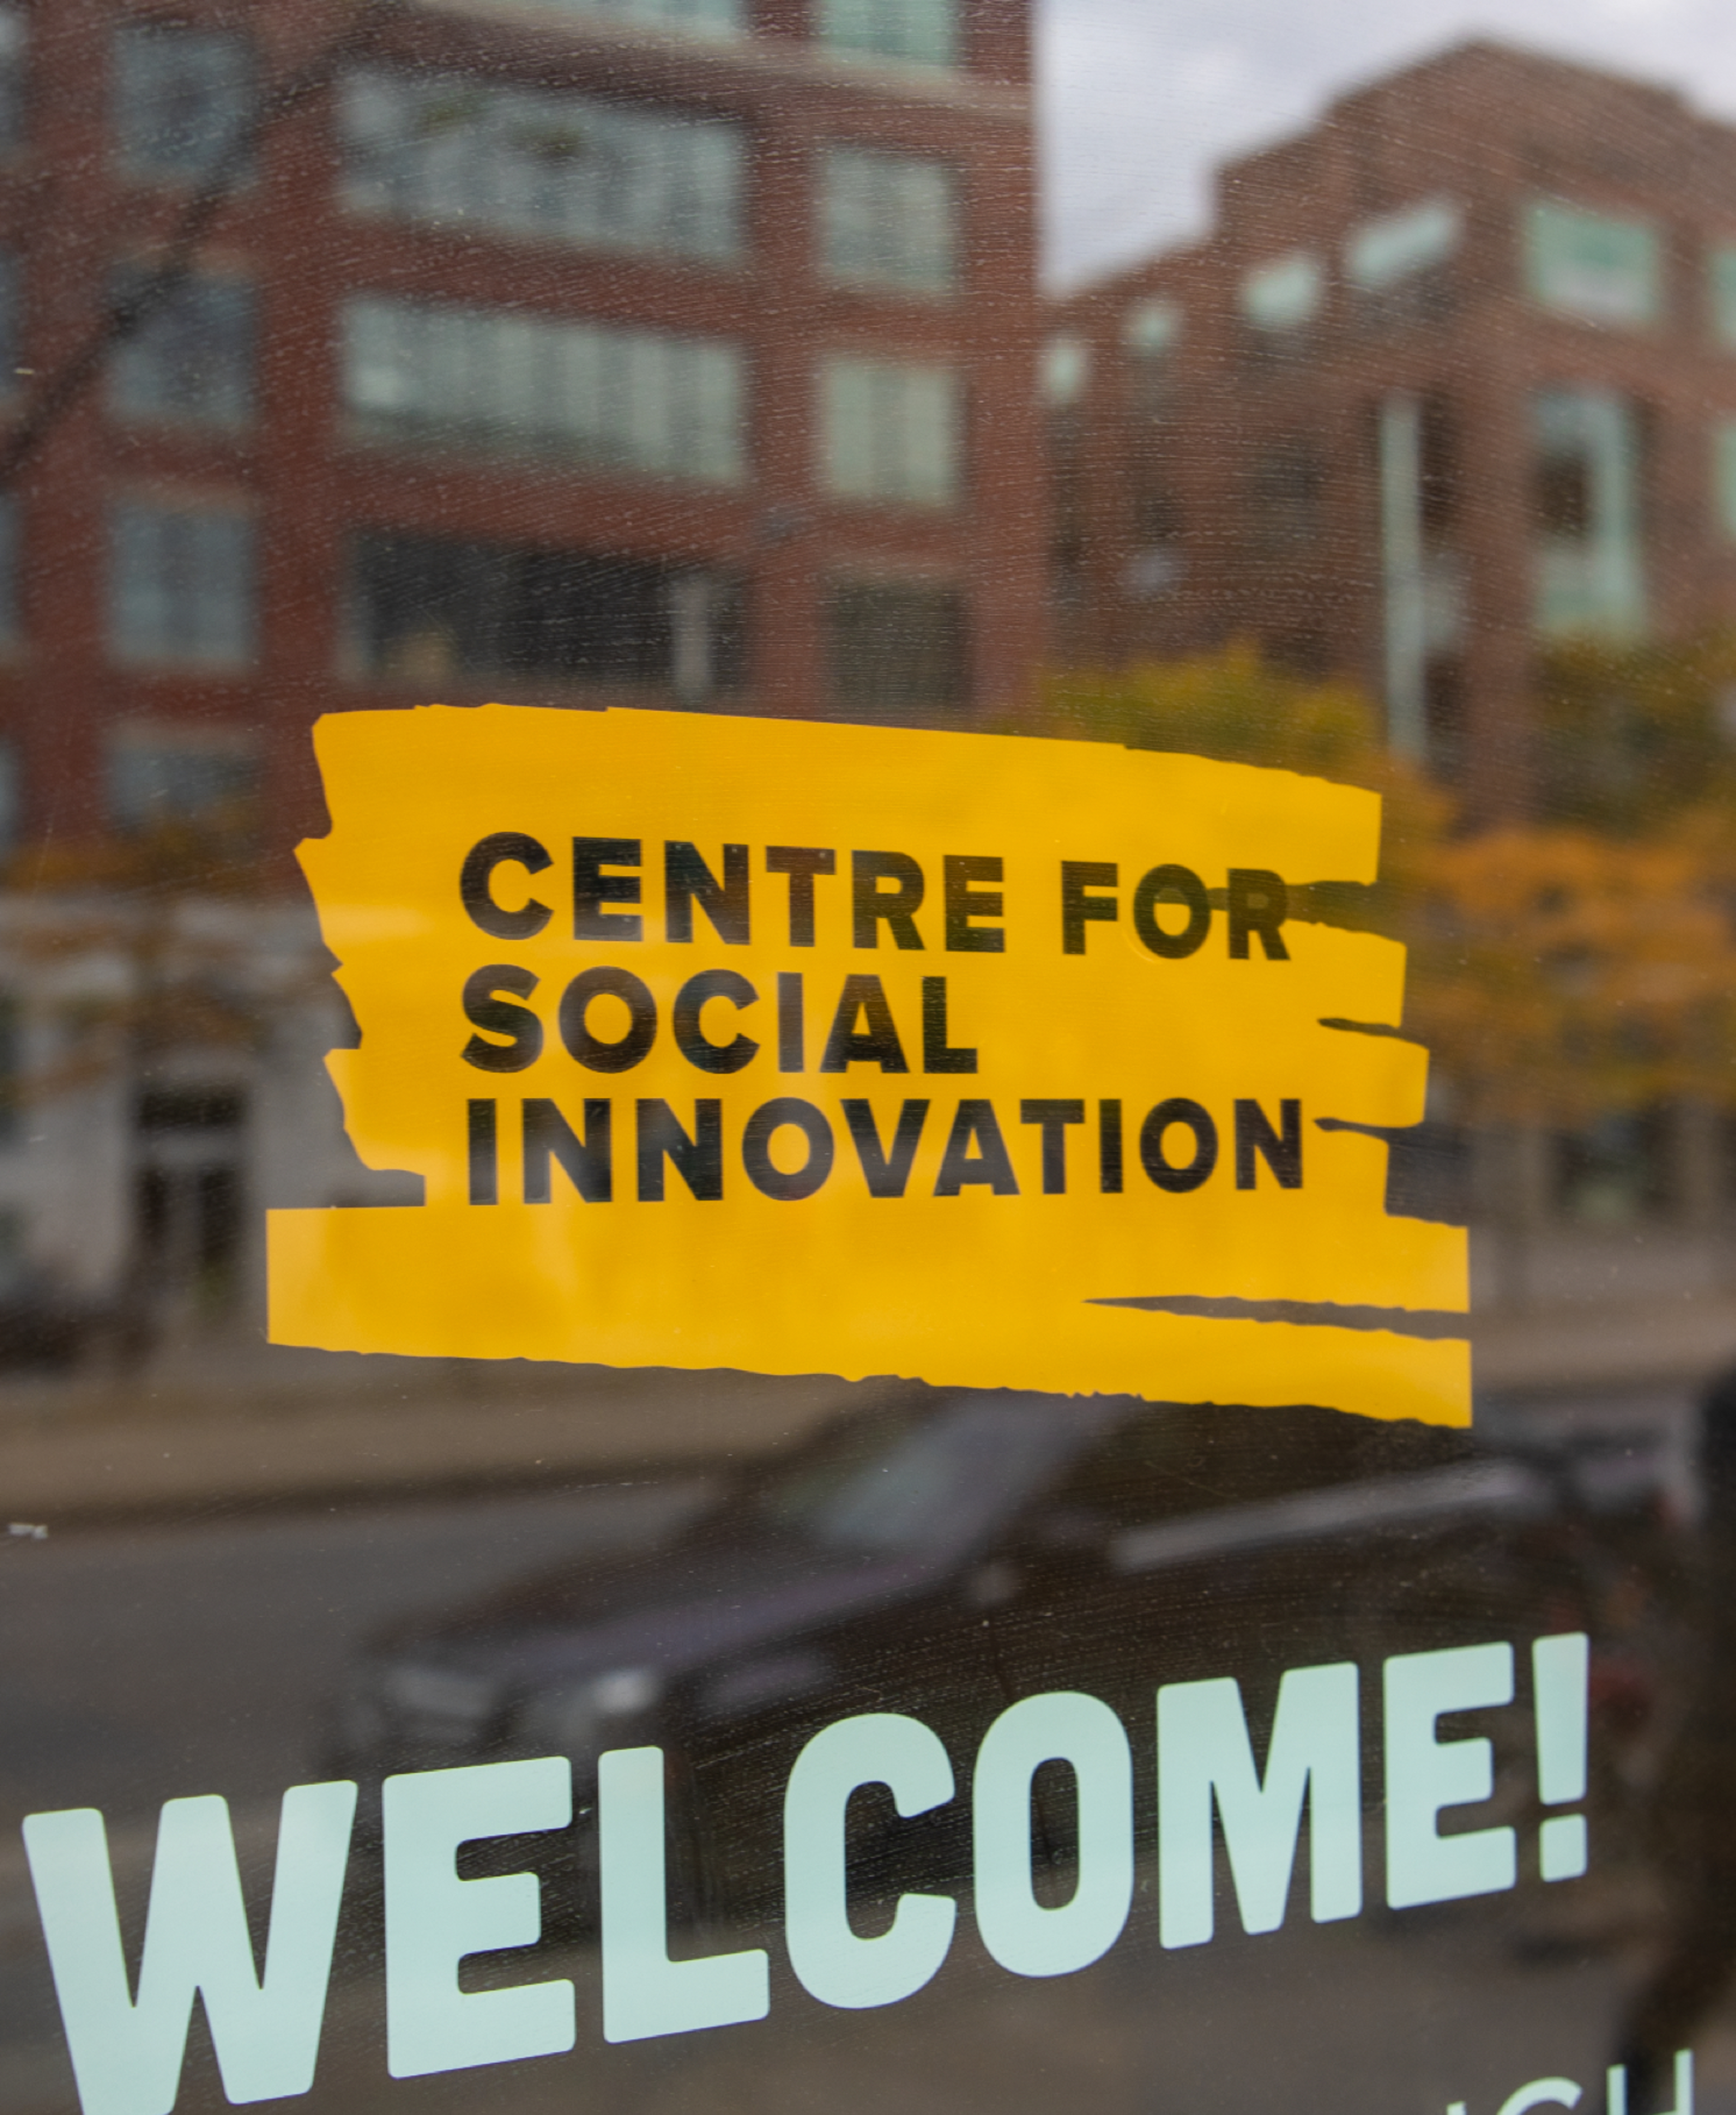 CSI Spadina street-level branding on the window and a 'WELCOME' message